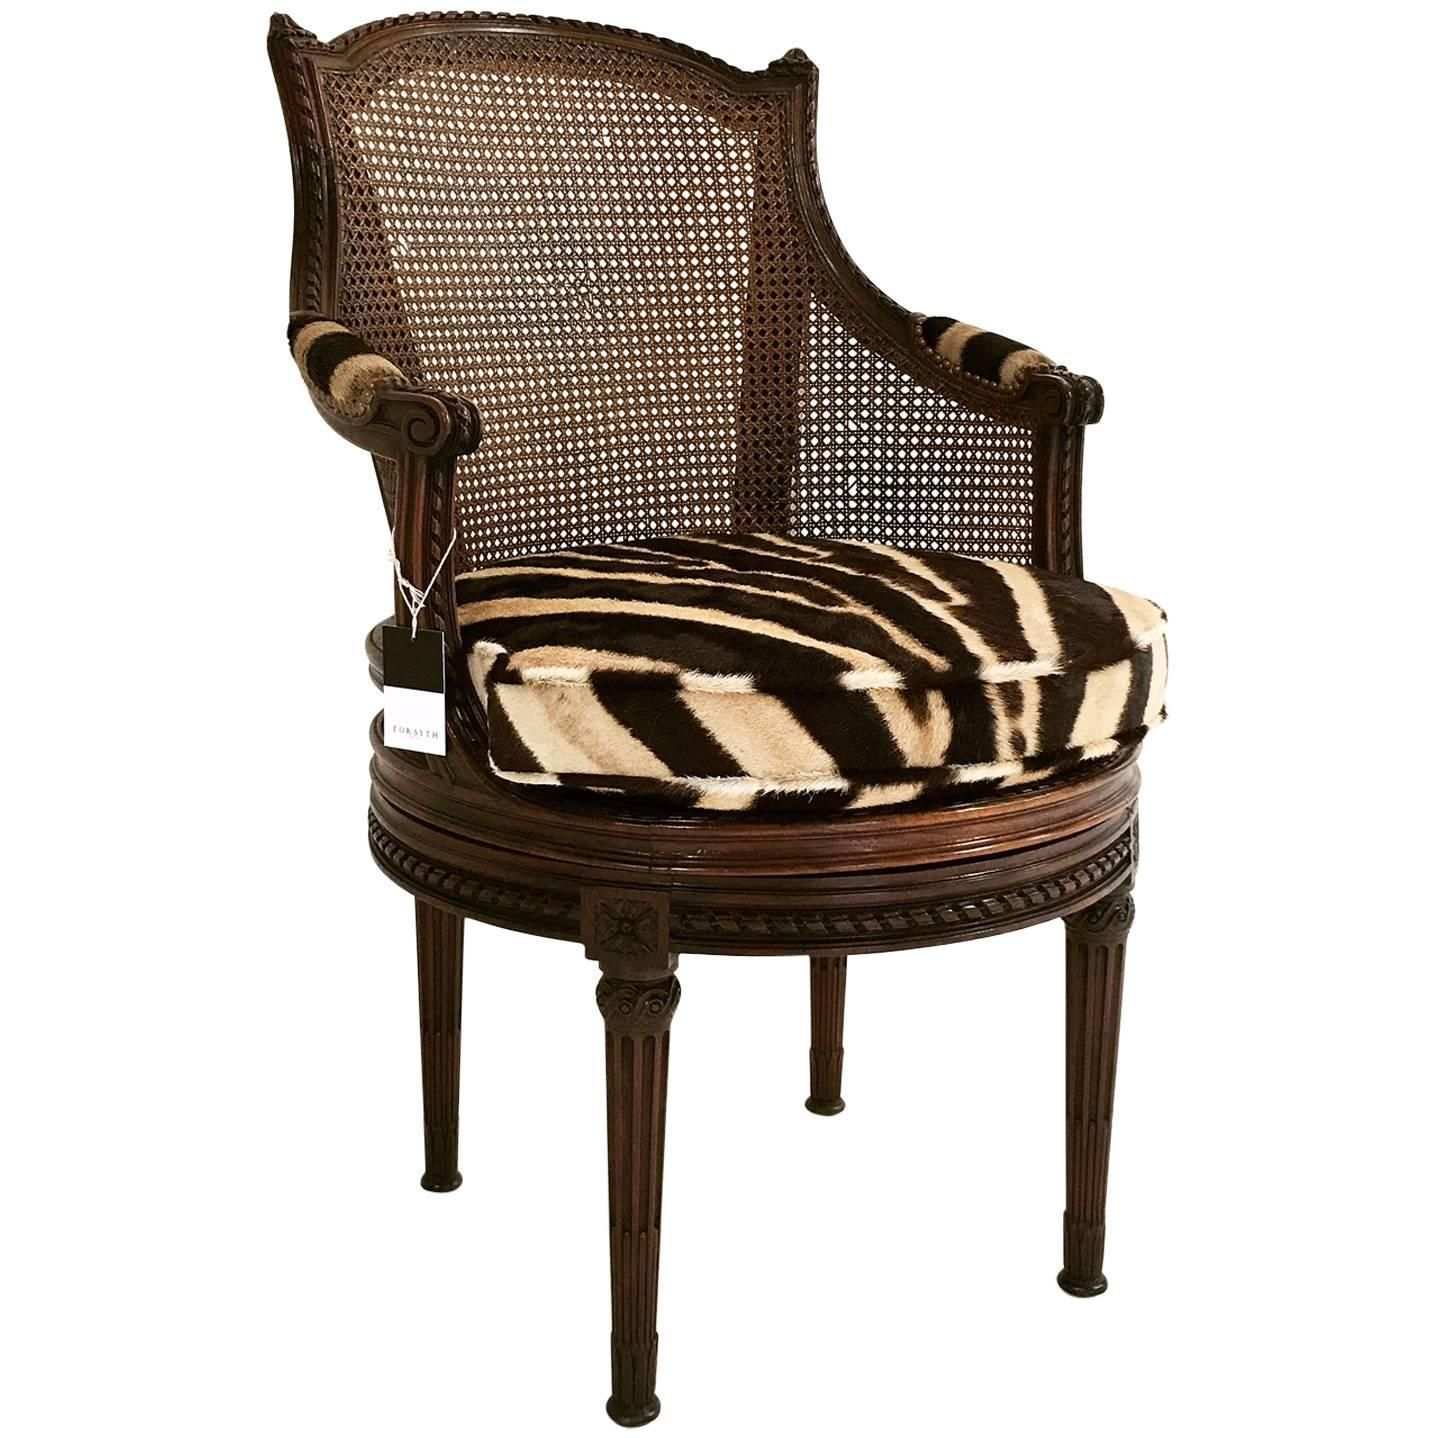 Th century french georges jacob mahogany and cane swivel bergere